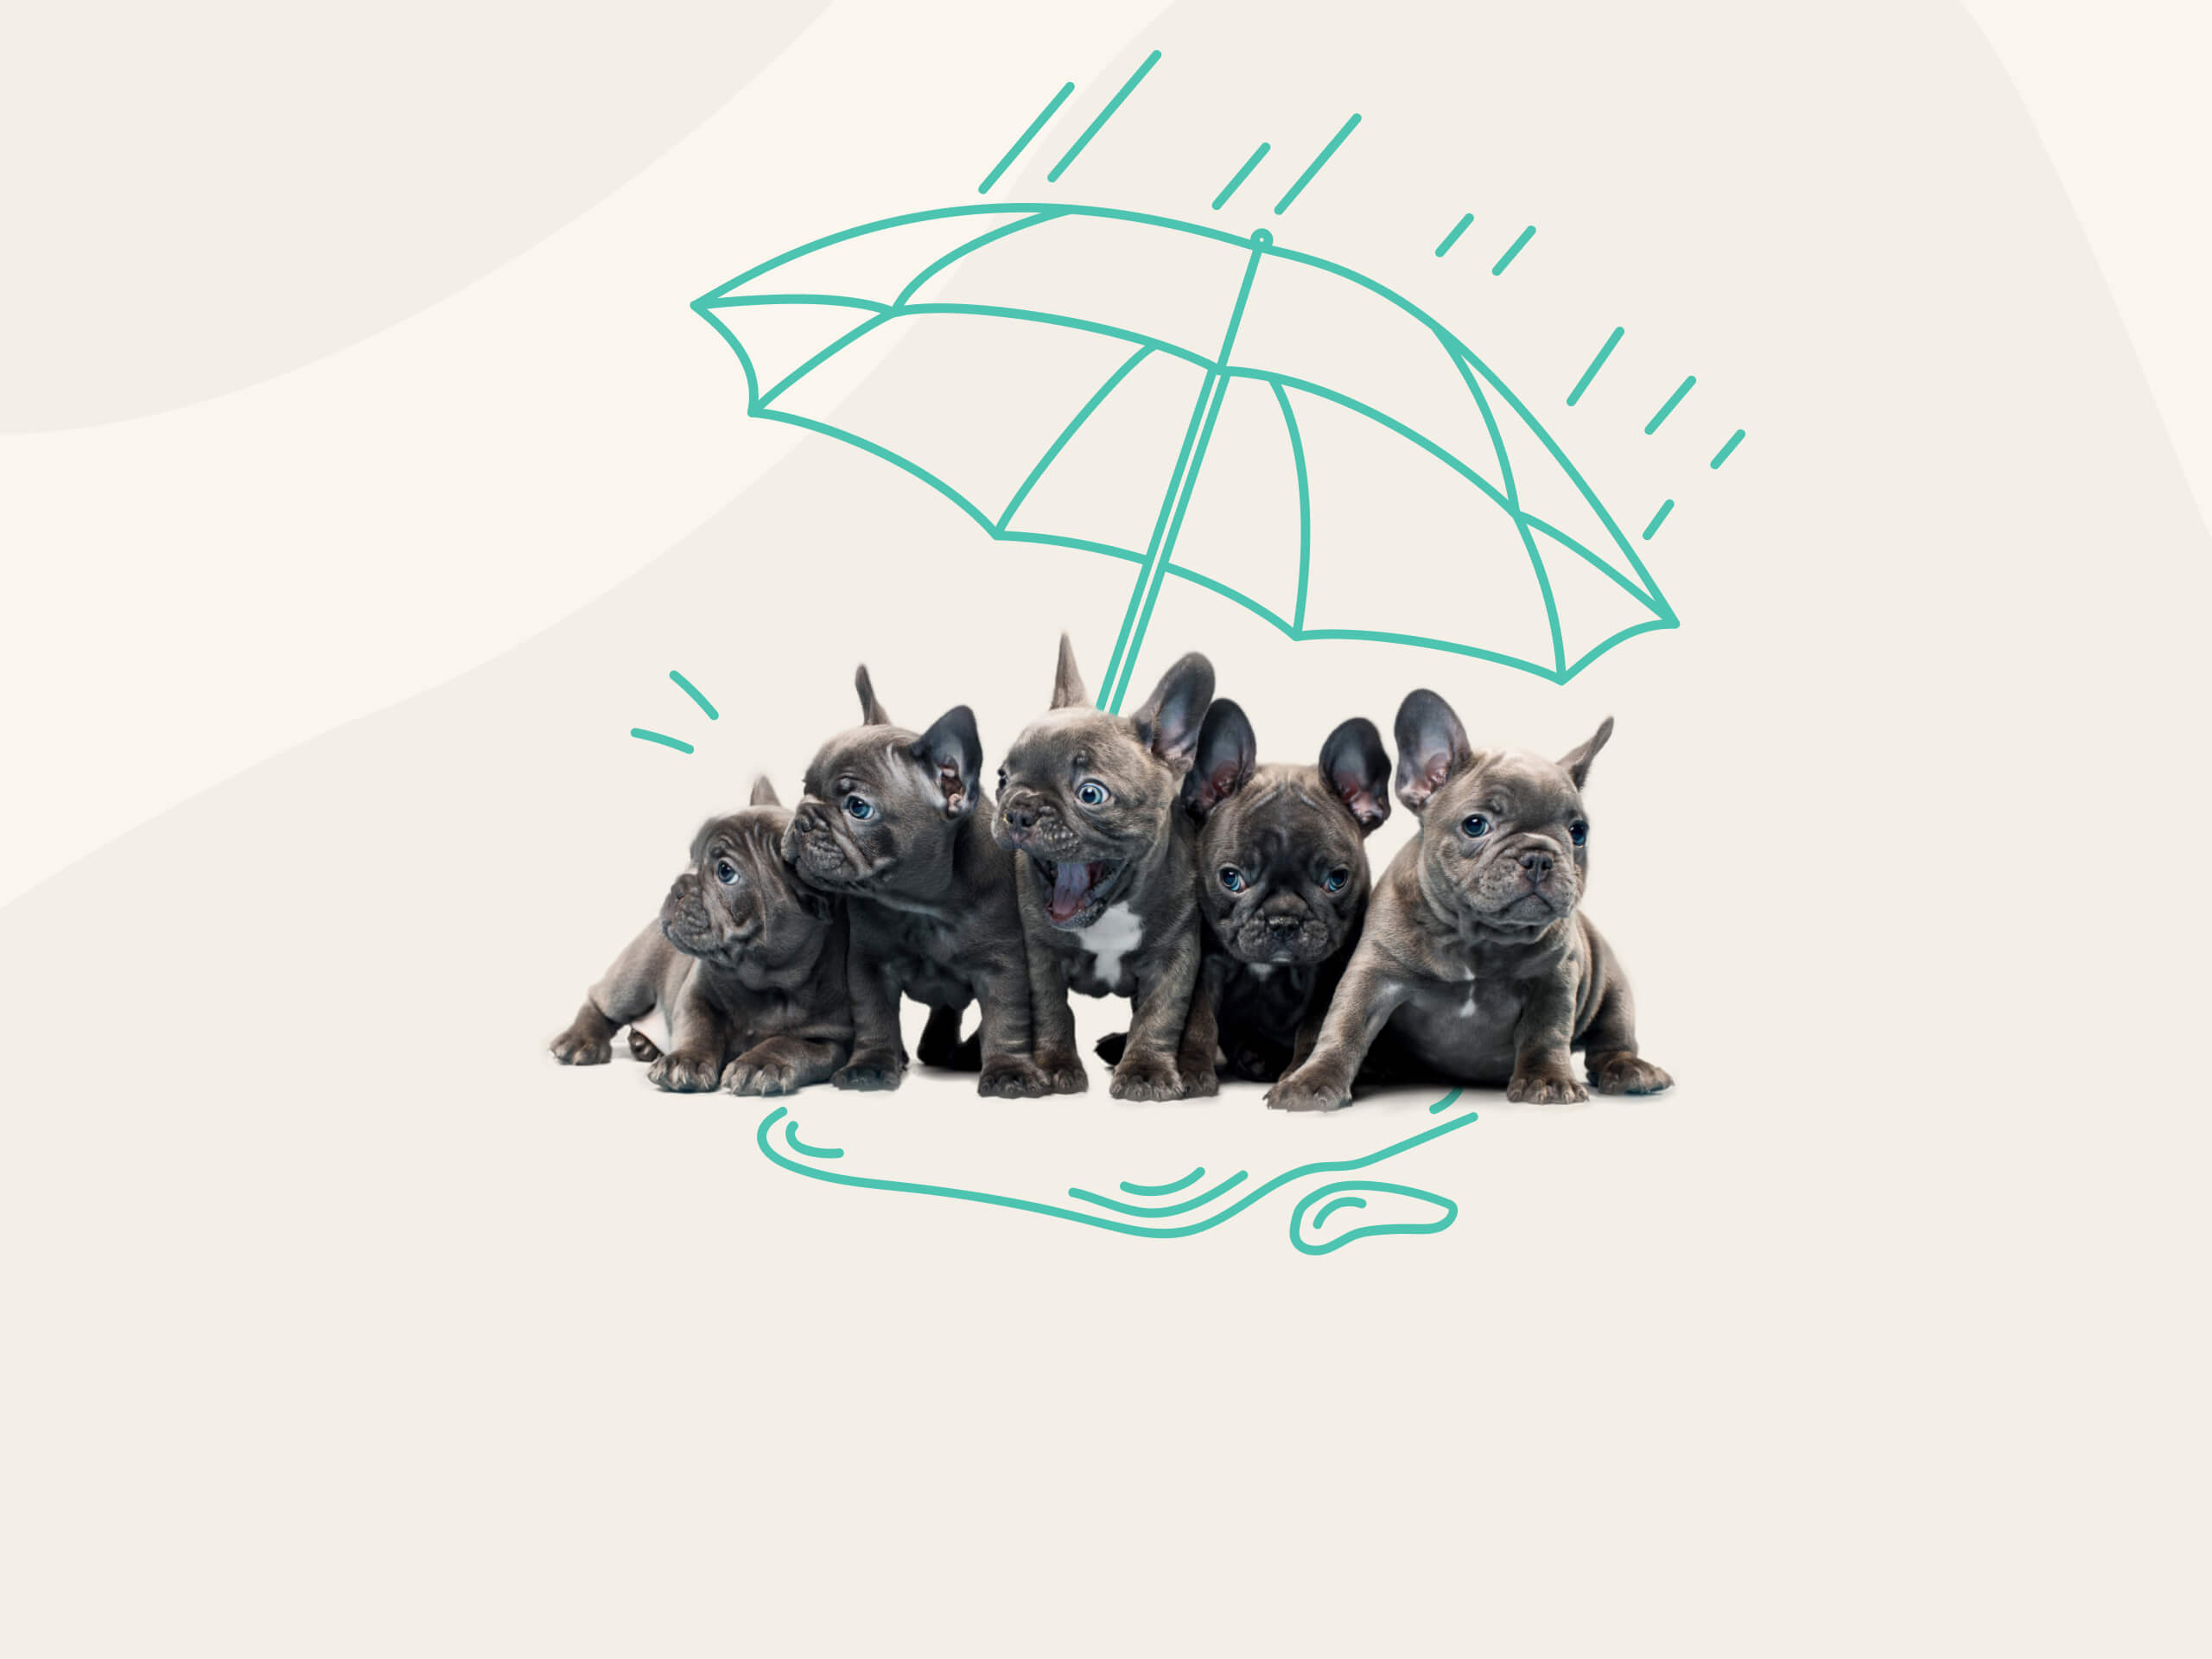 A group of French Bulldogs with an illustration of an umbrella over them.